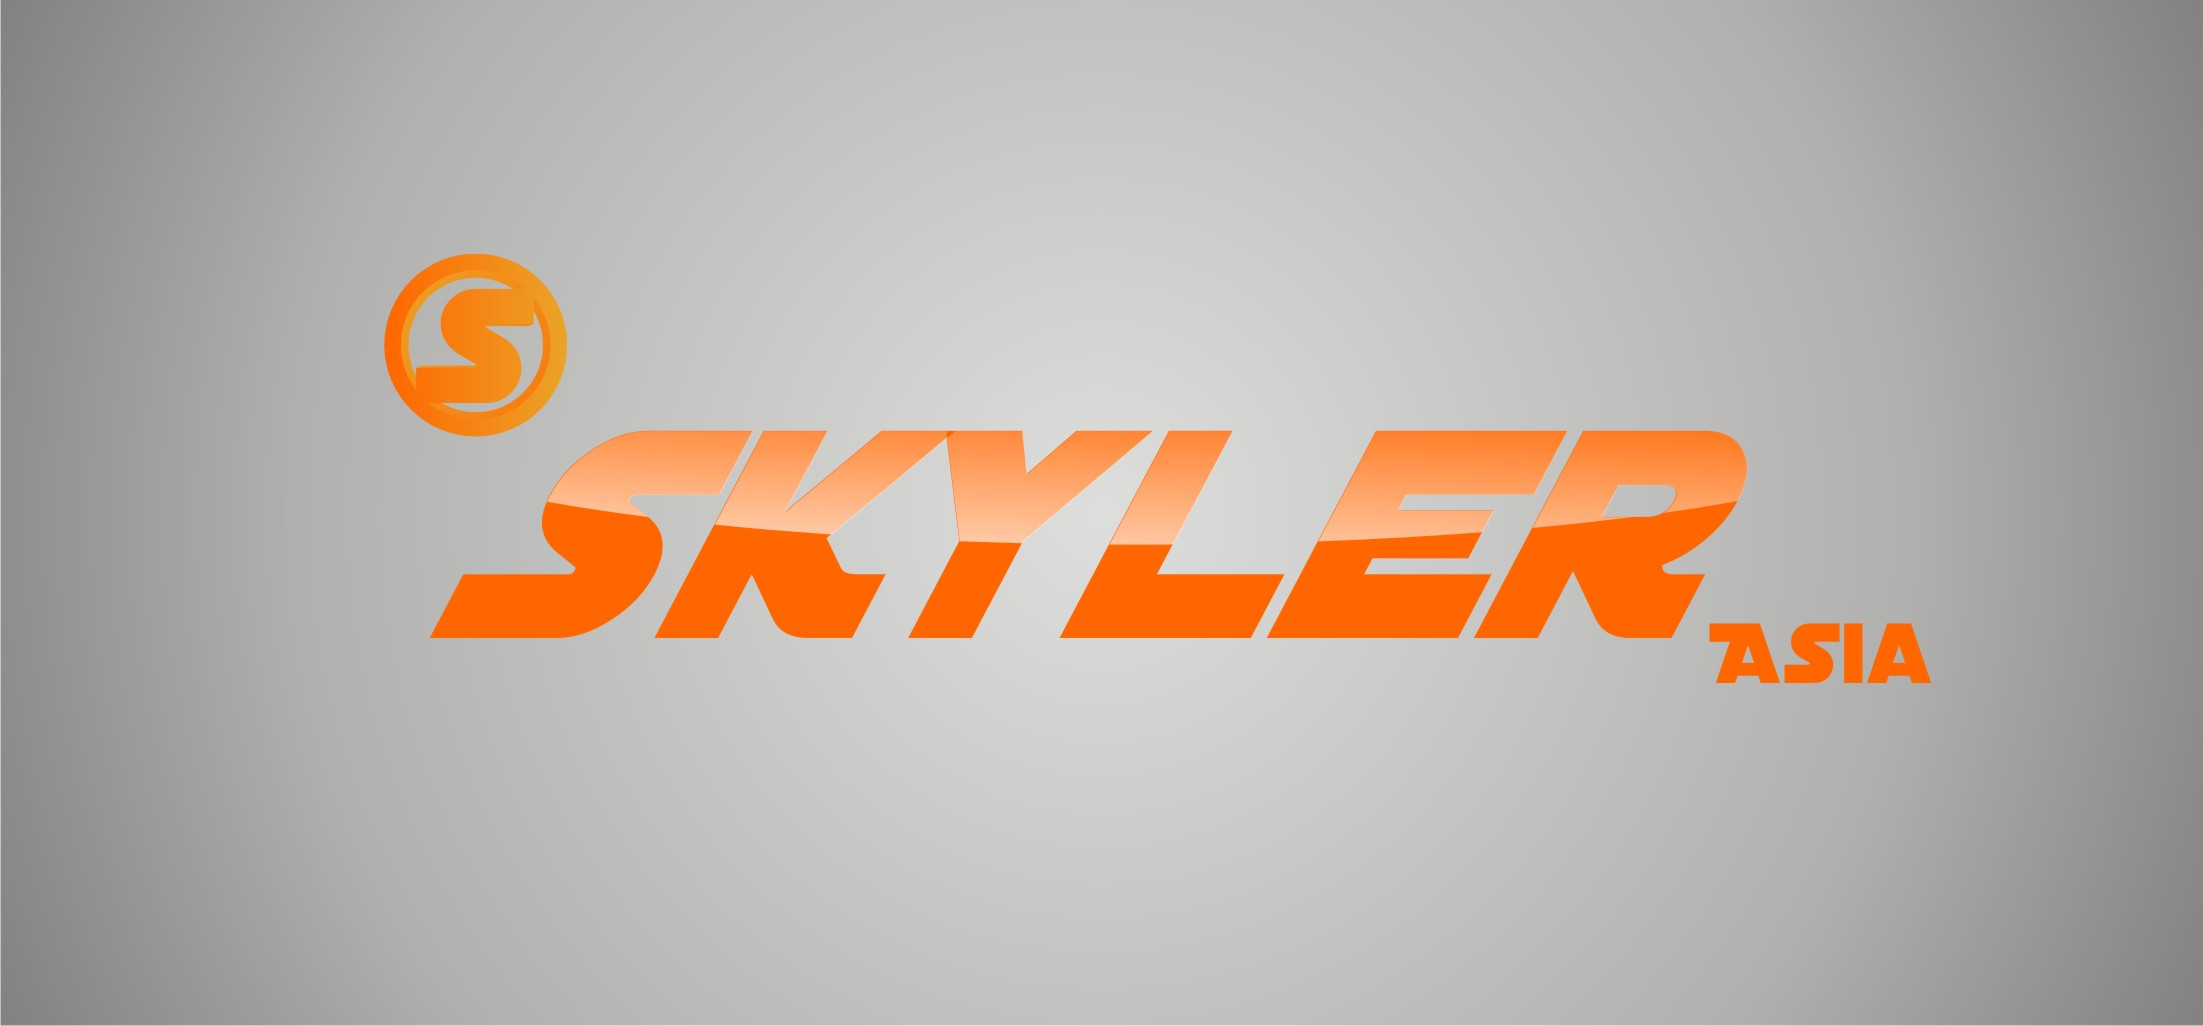 Logo Design by Choirul Jcd - Entry No. 85 in the Logo Design Contest Artistic Logo Design for Skyler.Asia.